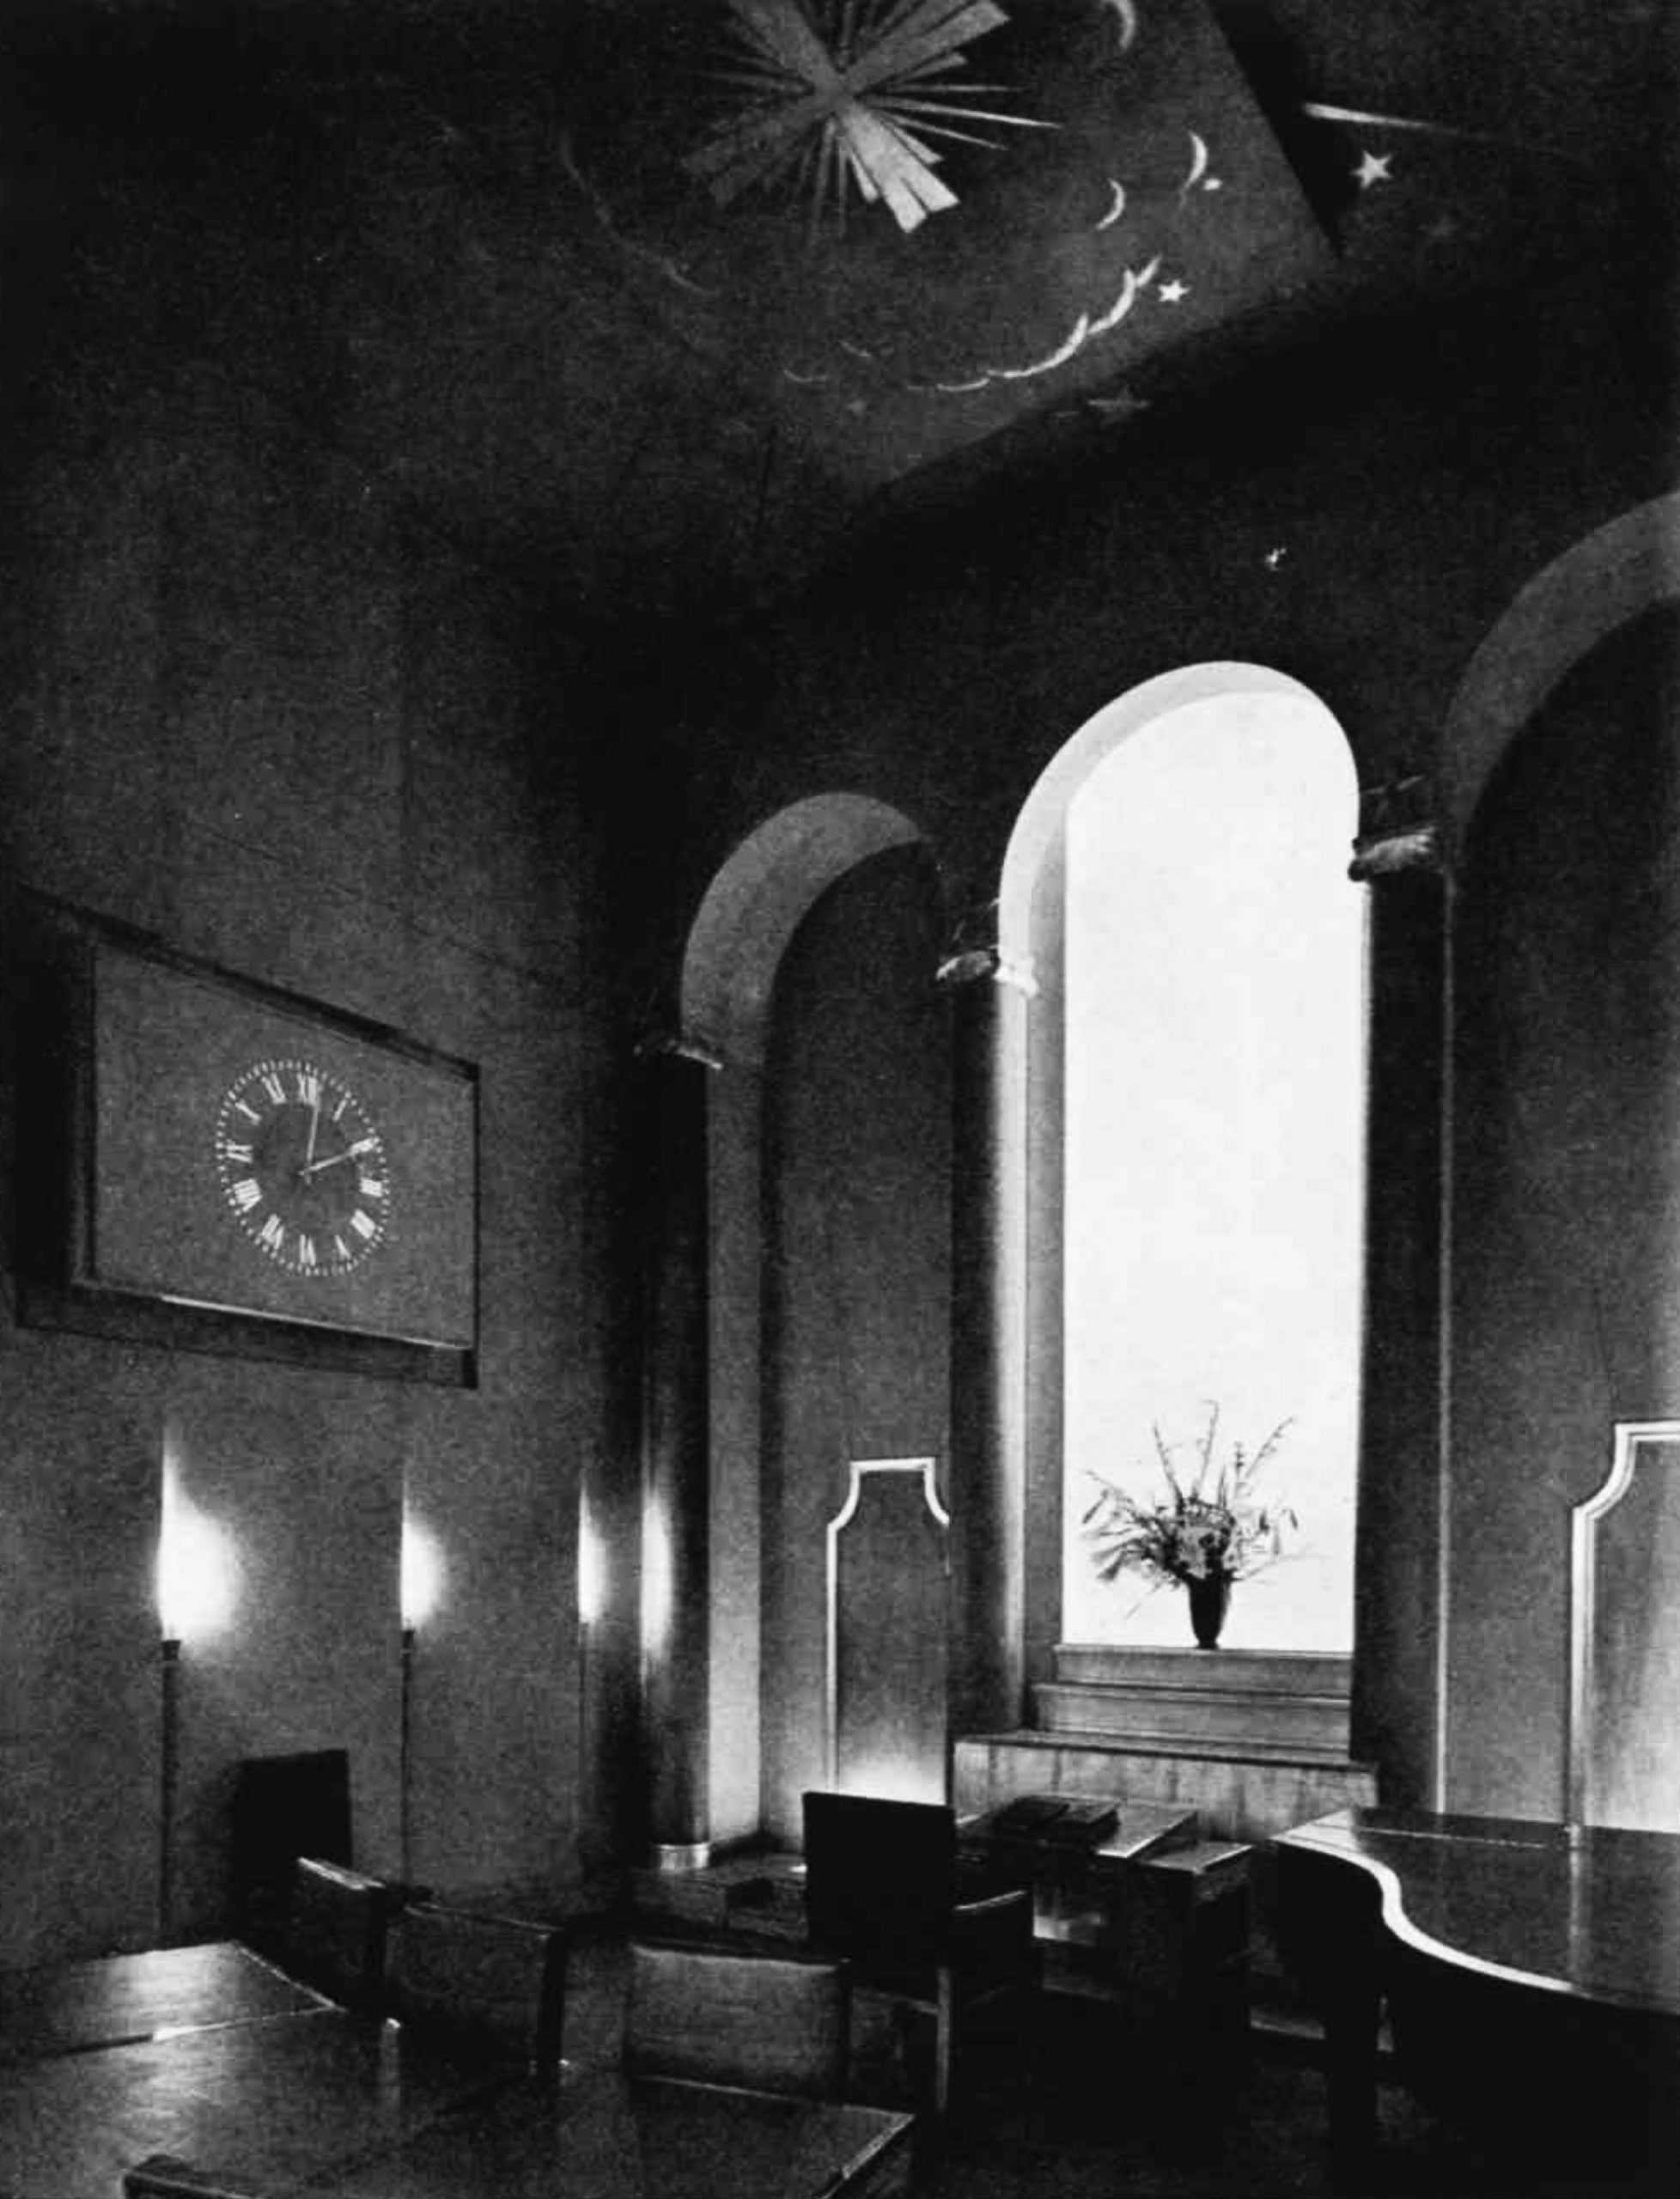 A room with alcoves - one bright - desks and chairs and a large clock